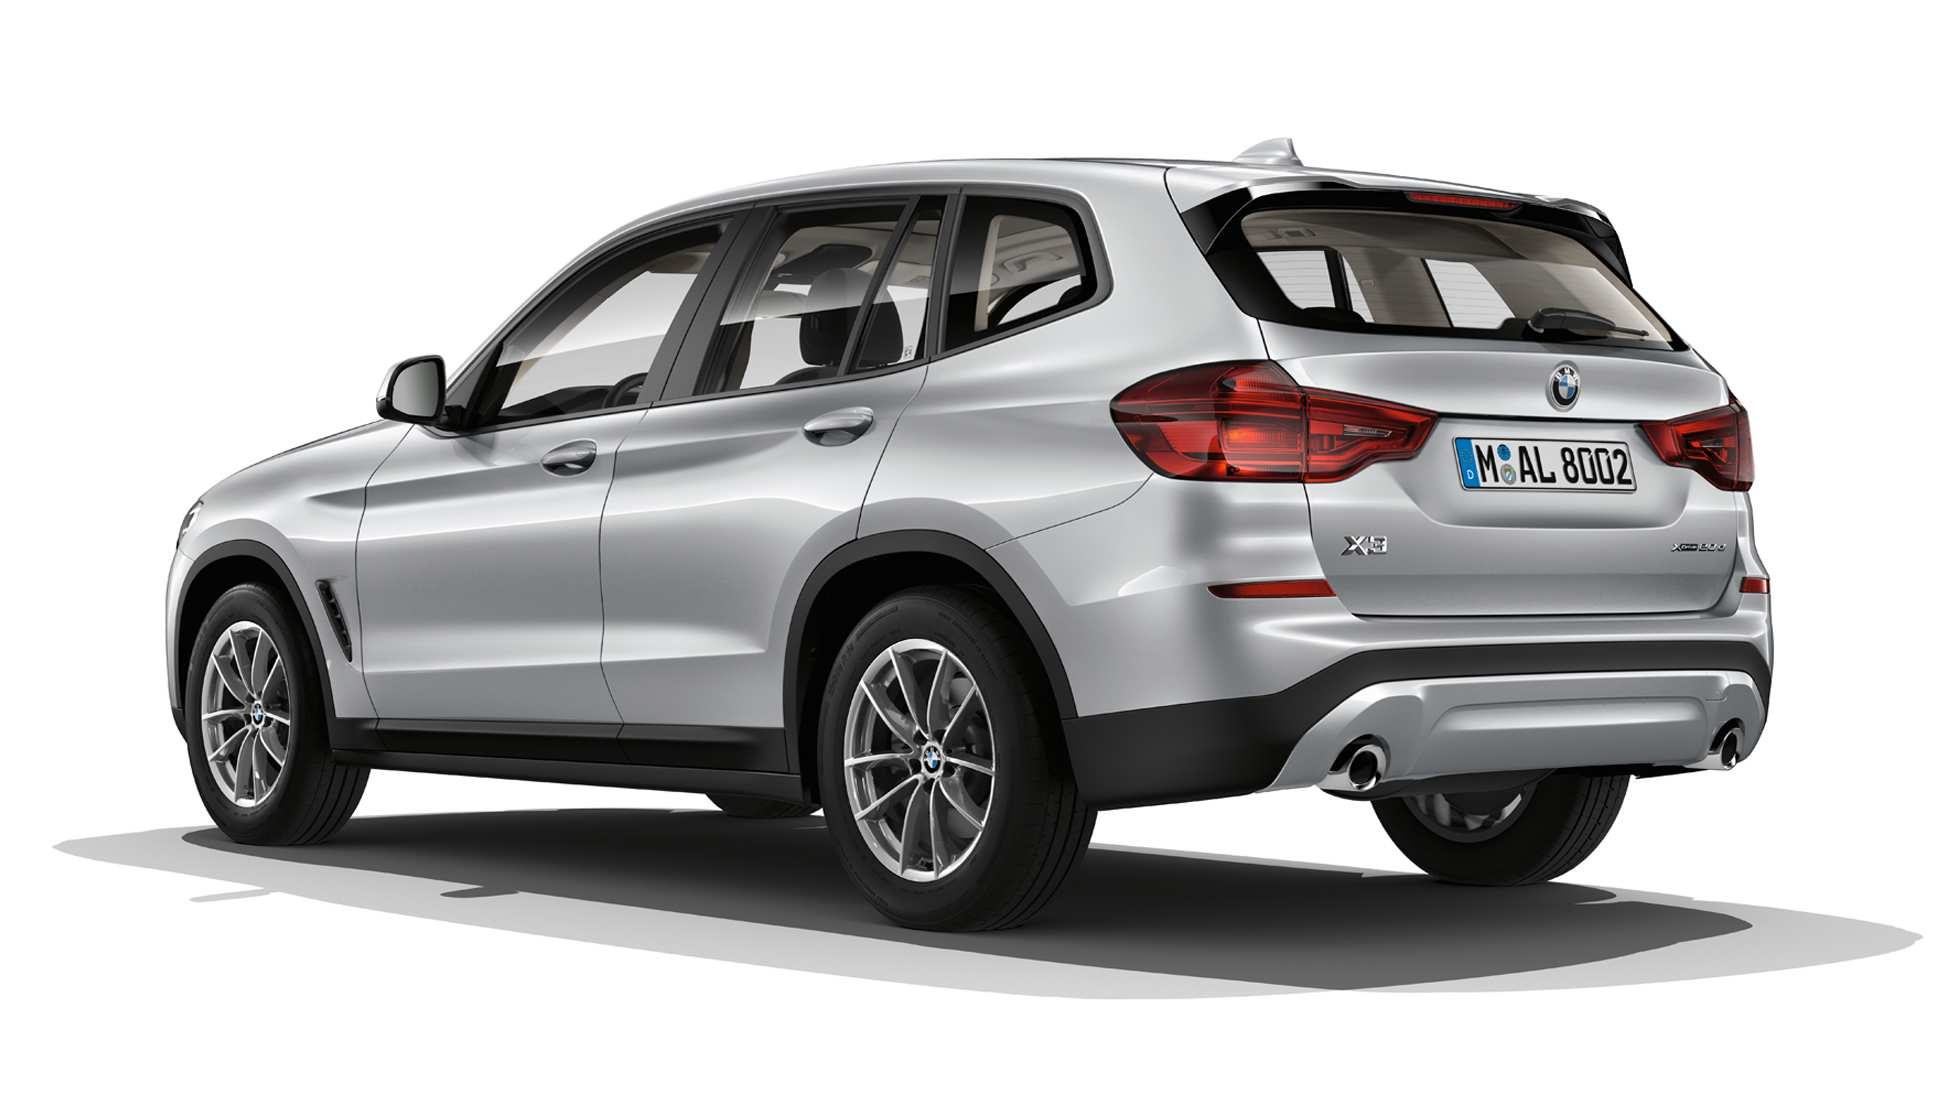 34 The Best 2019 BMW X3 Overview